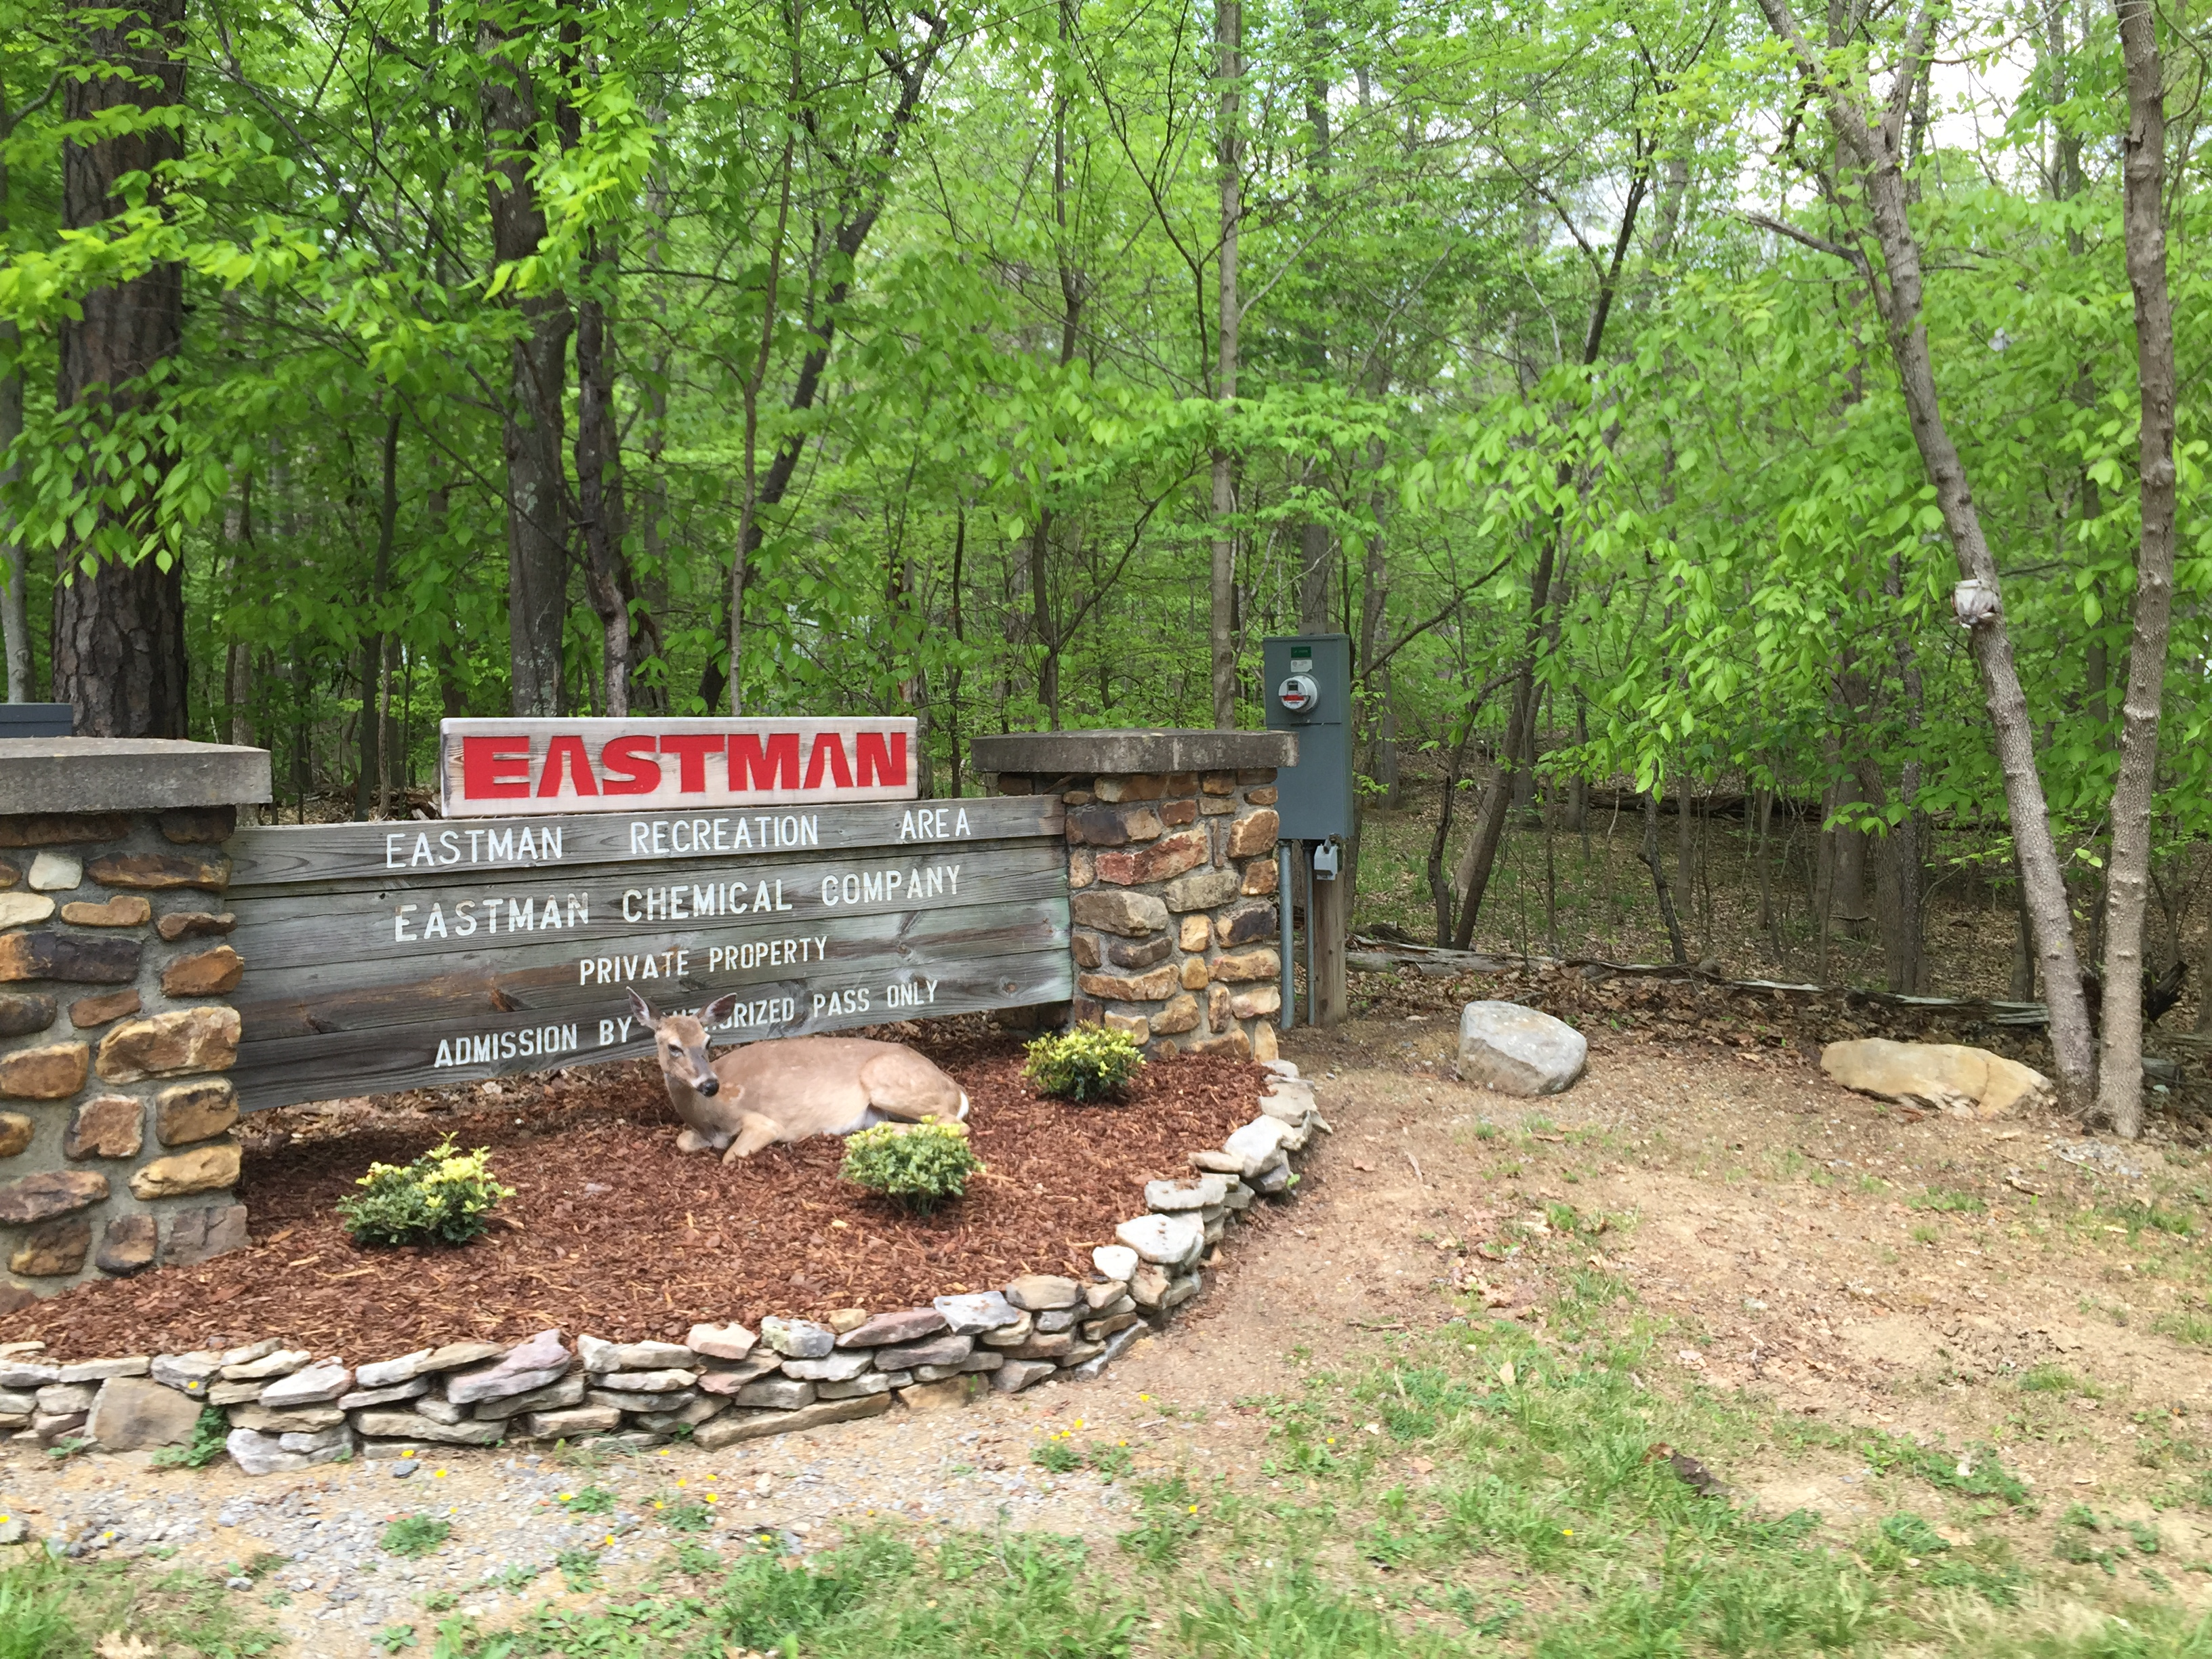 Eastman Chemical Company | Tennessee | Bays Mountain Recreation Area